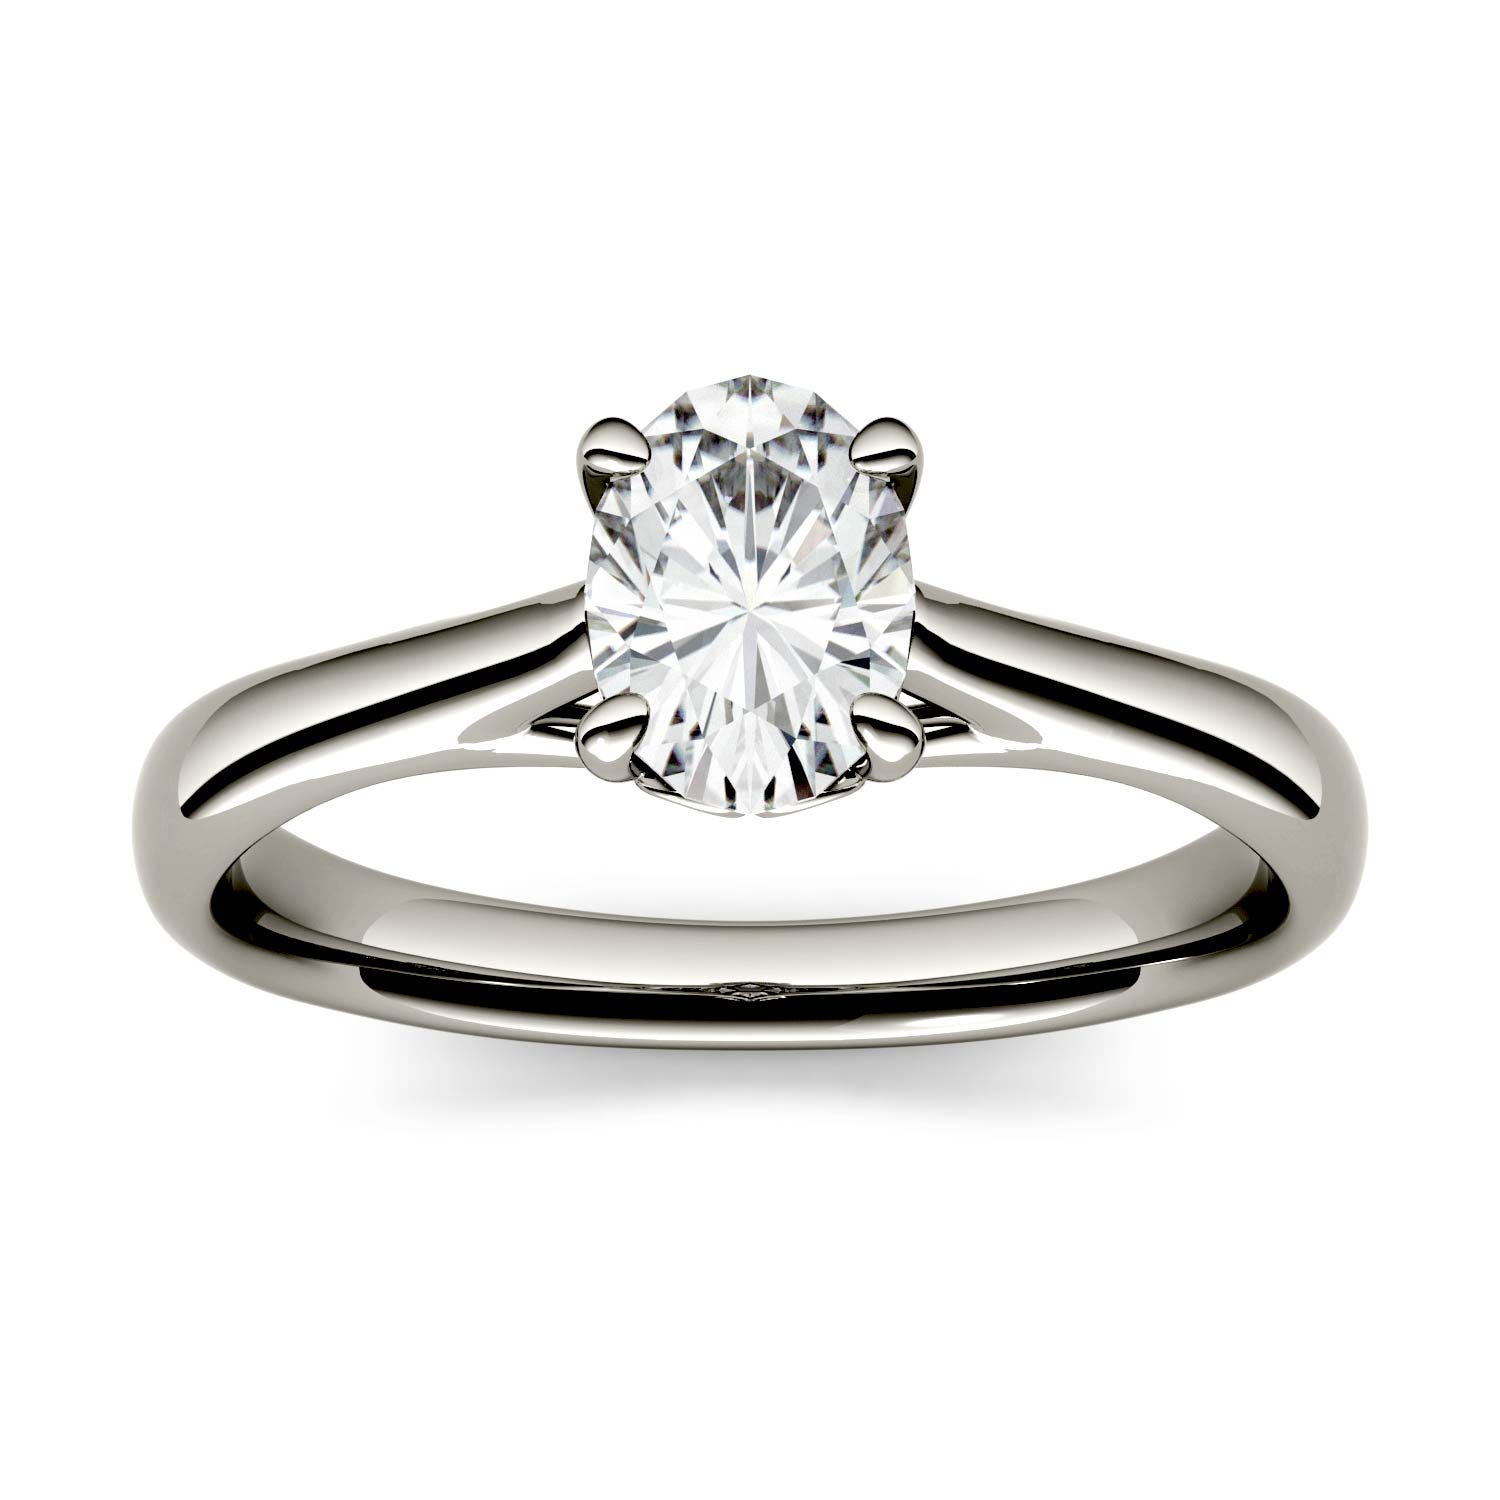 Four Prong Solitaire Engagement Ring in 14K White Gold, Size: 6, 2.10CTW Oval Forever One - Near-Colorless Moissanite Charles & Colvard